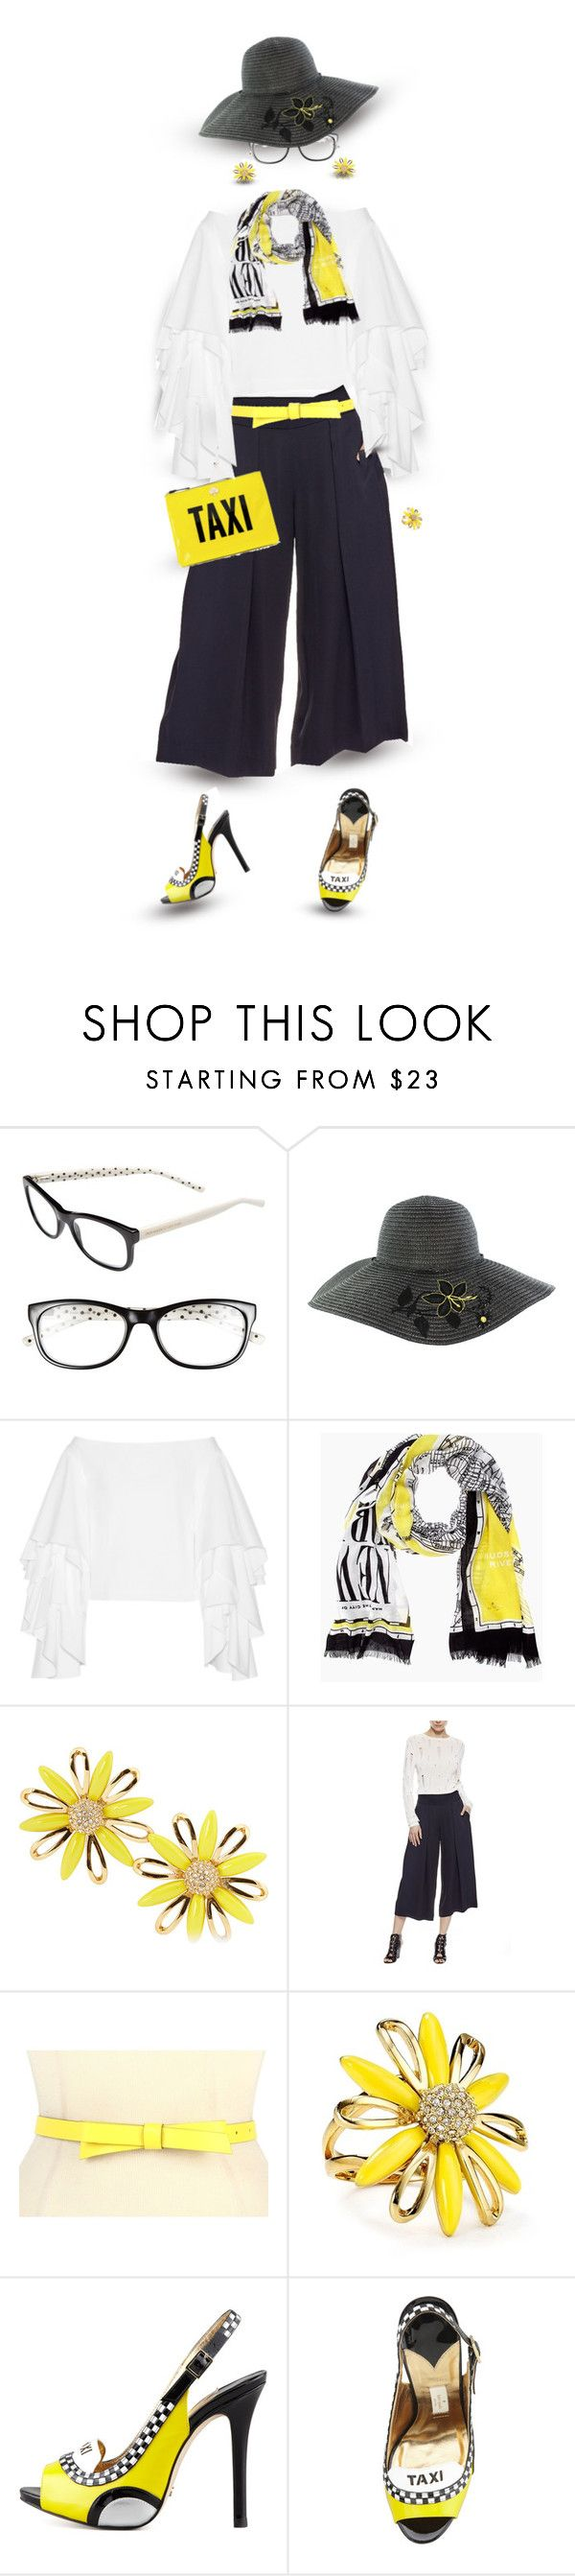 """""""Kate Spade - New York Taxi"""" by dkelley-0711 ❤ liked on Polyvore featuring Kate Spade, Rosie Assoulin, Nicole Miller and katespade"""